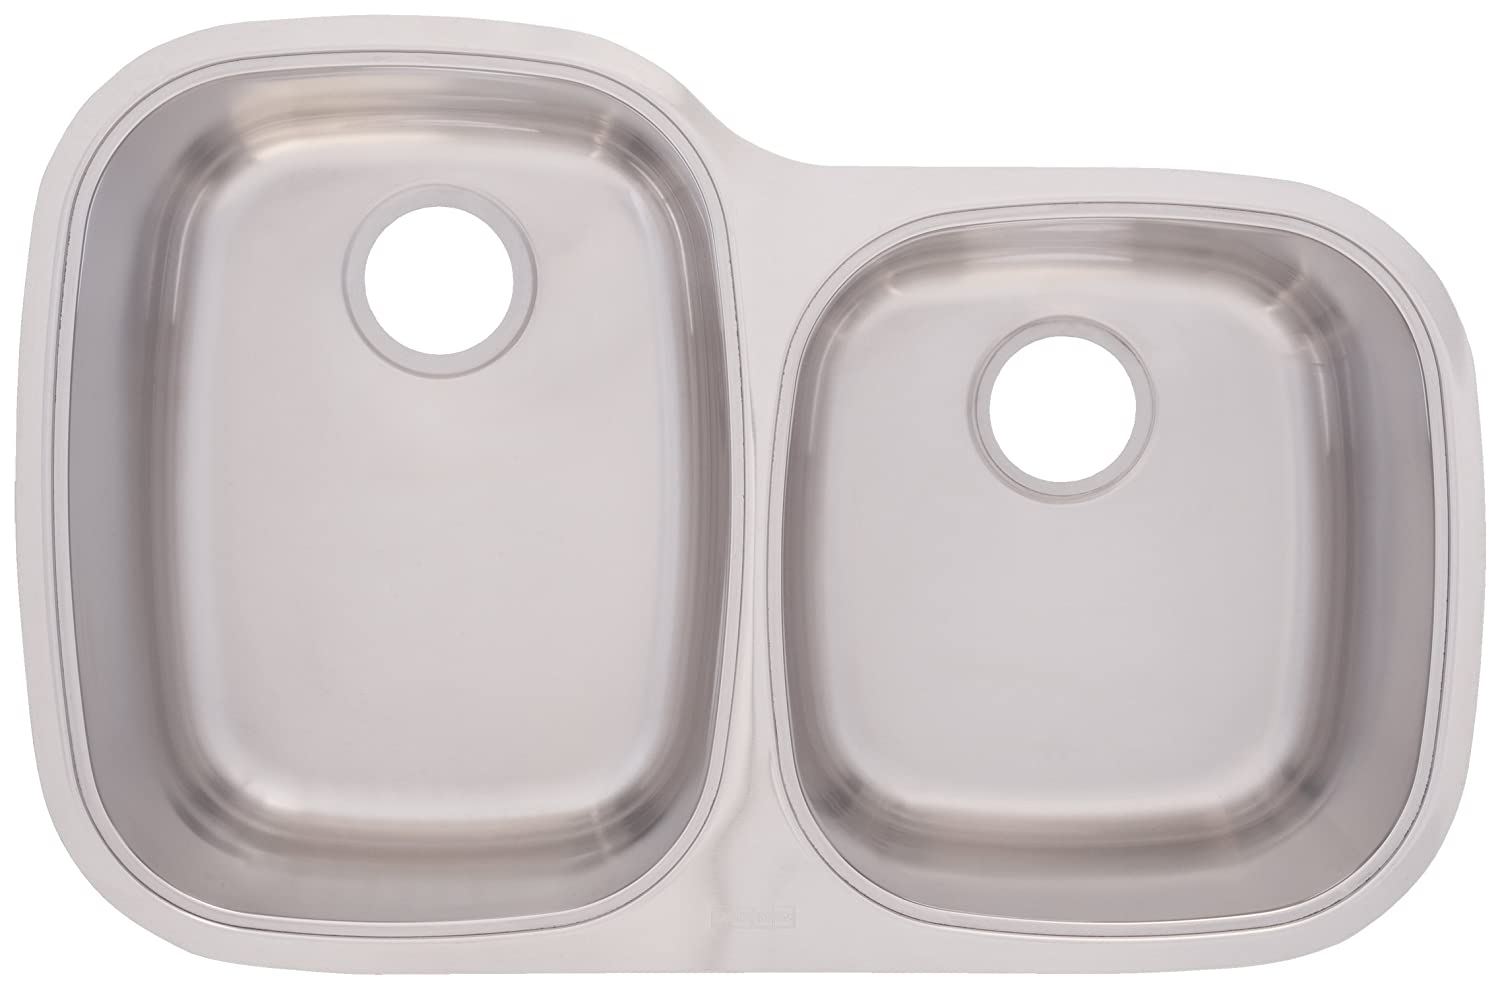 franke uosk900 18 offset double bowl stainless steel 32x18 5in  undermount sink     amazon com franke uosk900 18 offset double bowl stainless steel 32x18 5in      rh   amazon com